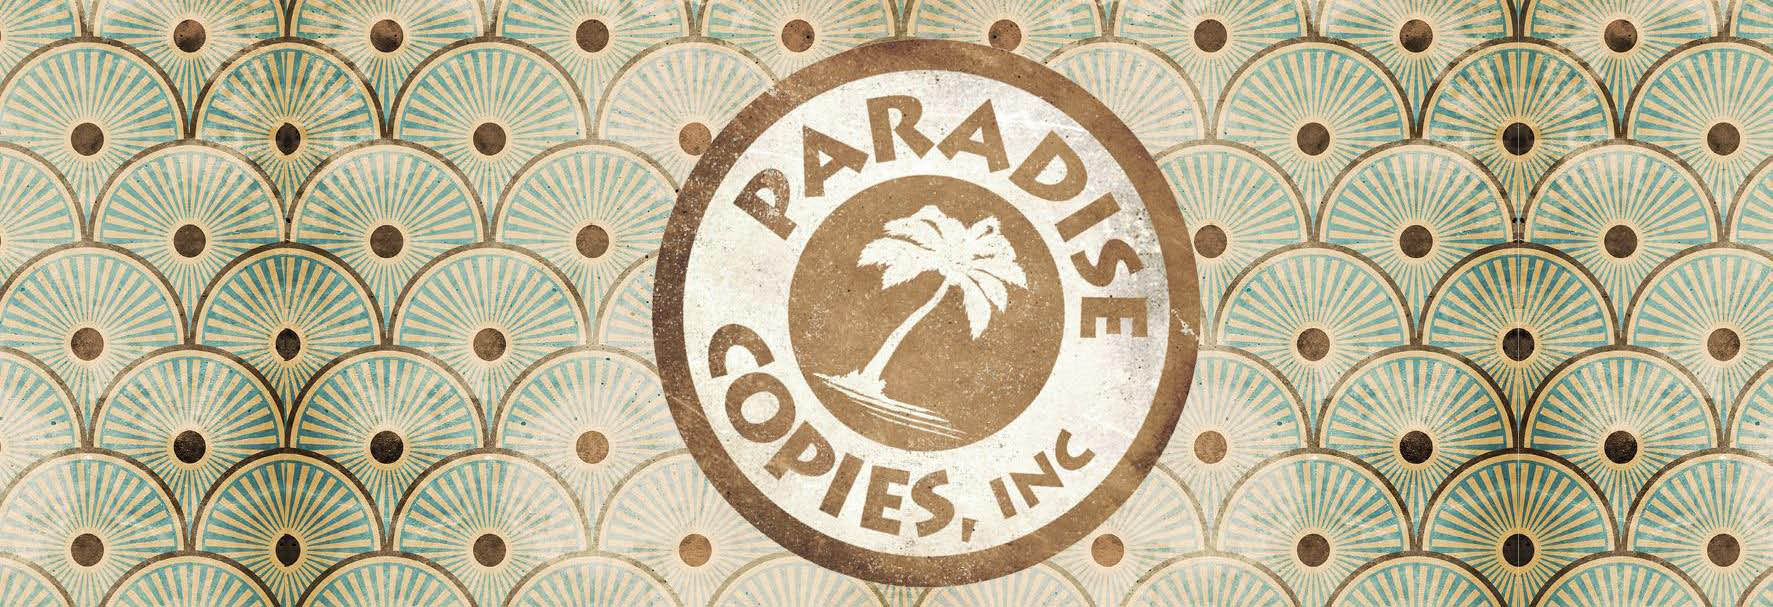 Paradise Copies in Northampton, MA Banner ad